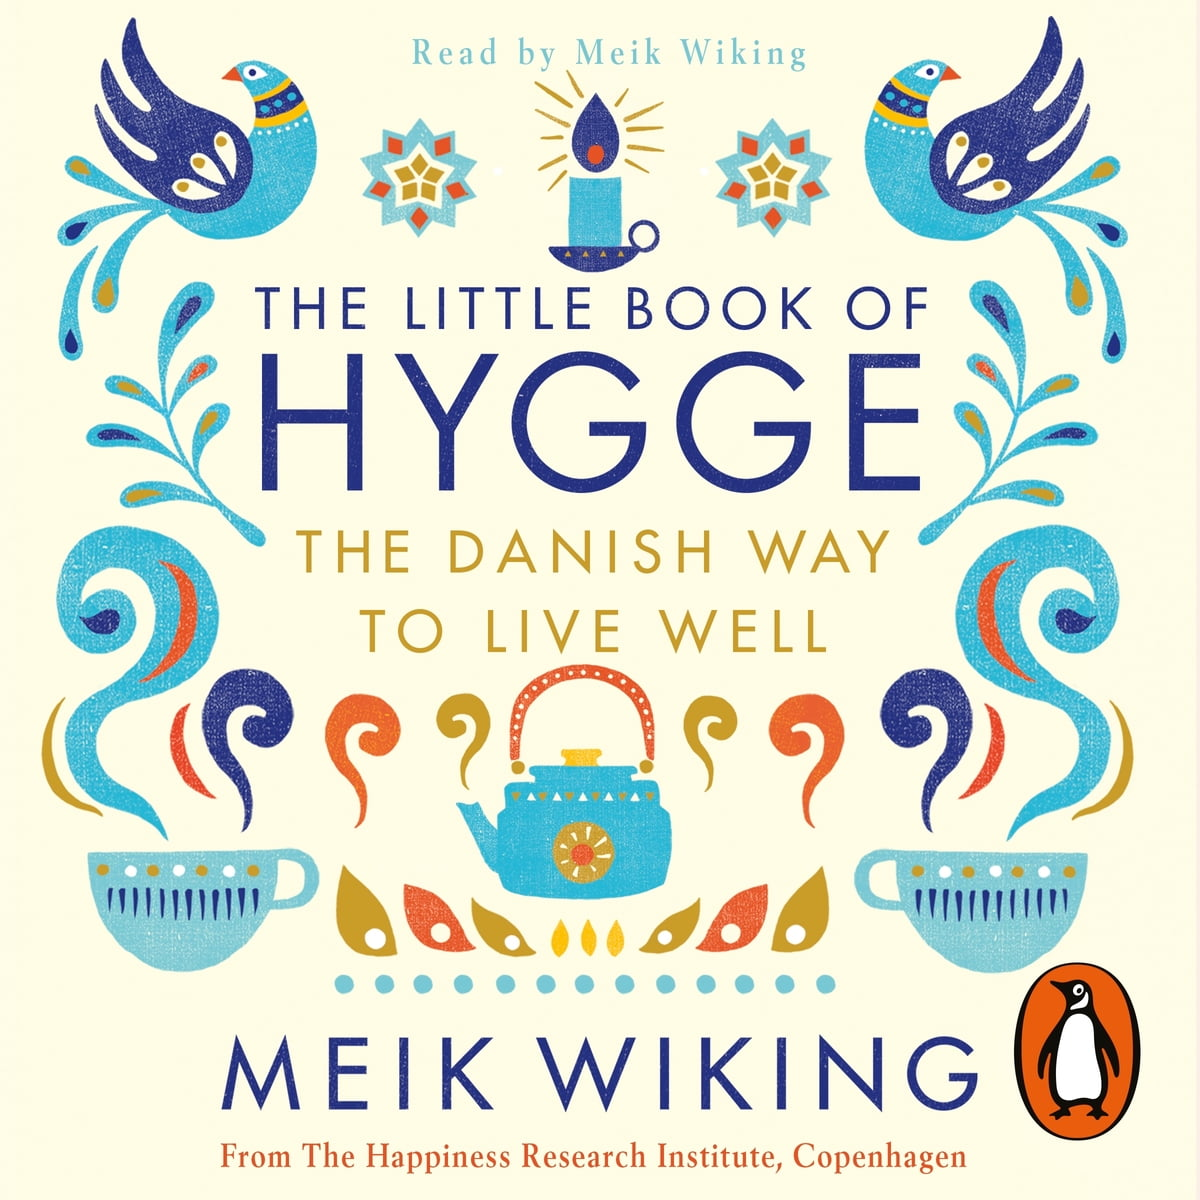 The Little Book of Hygge Audiobook by Meik Wiking - 9780241980217 ...